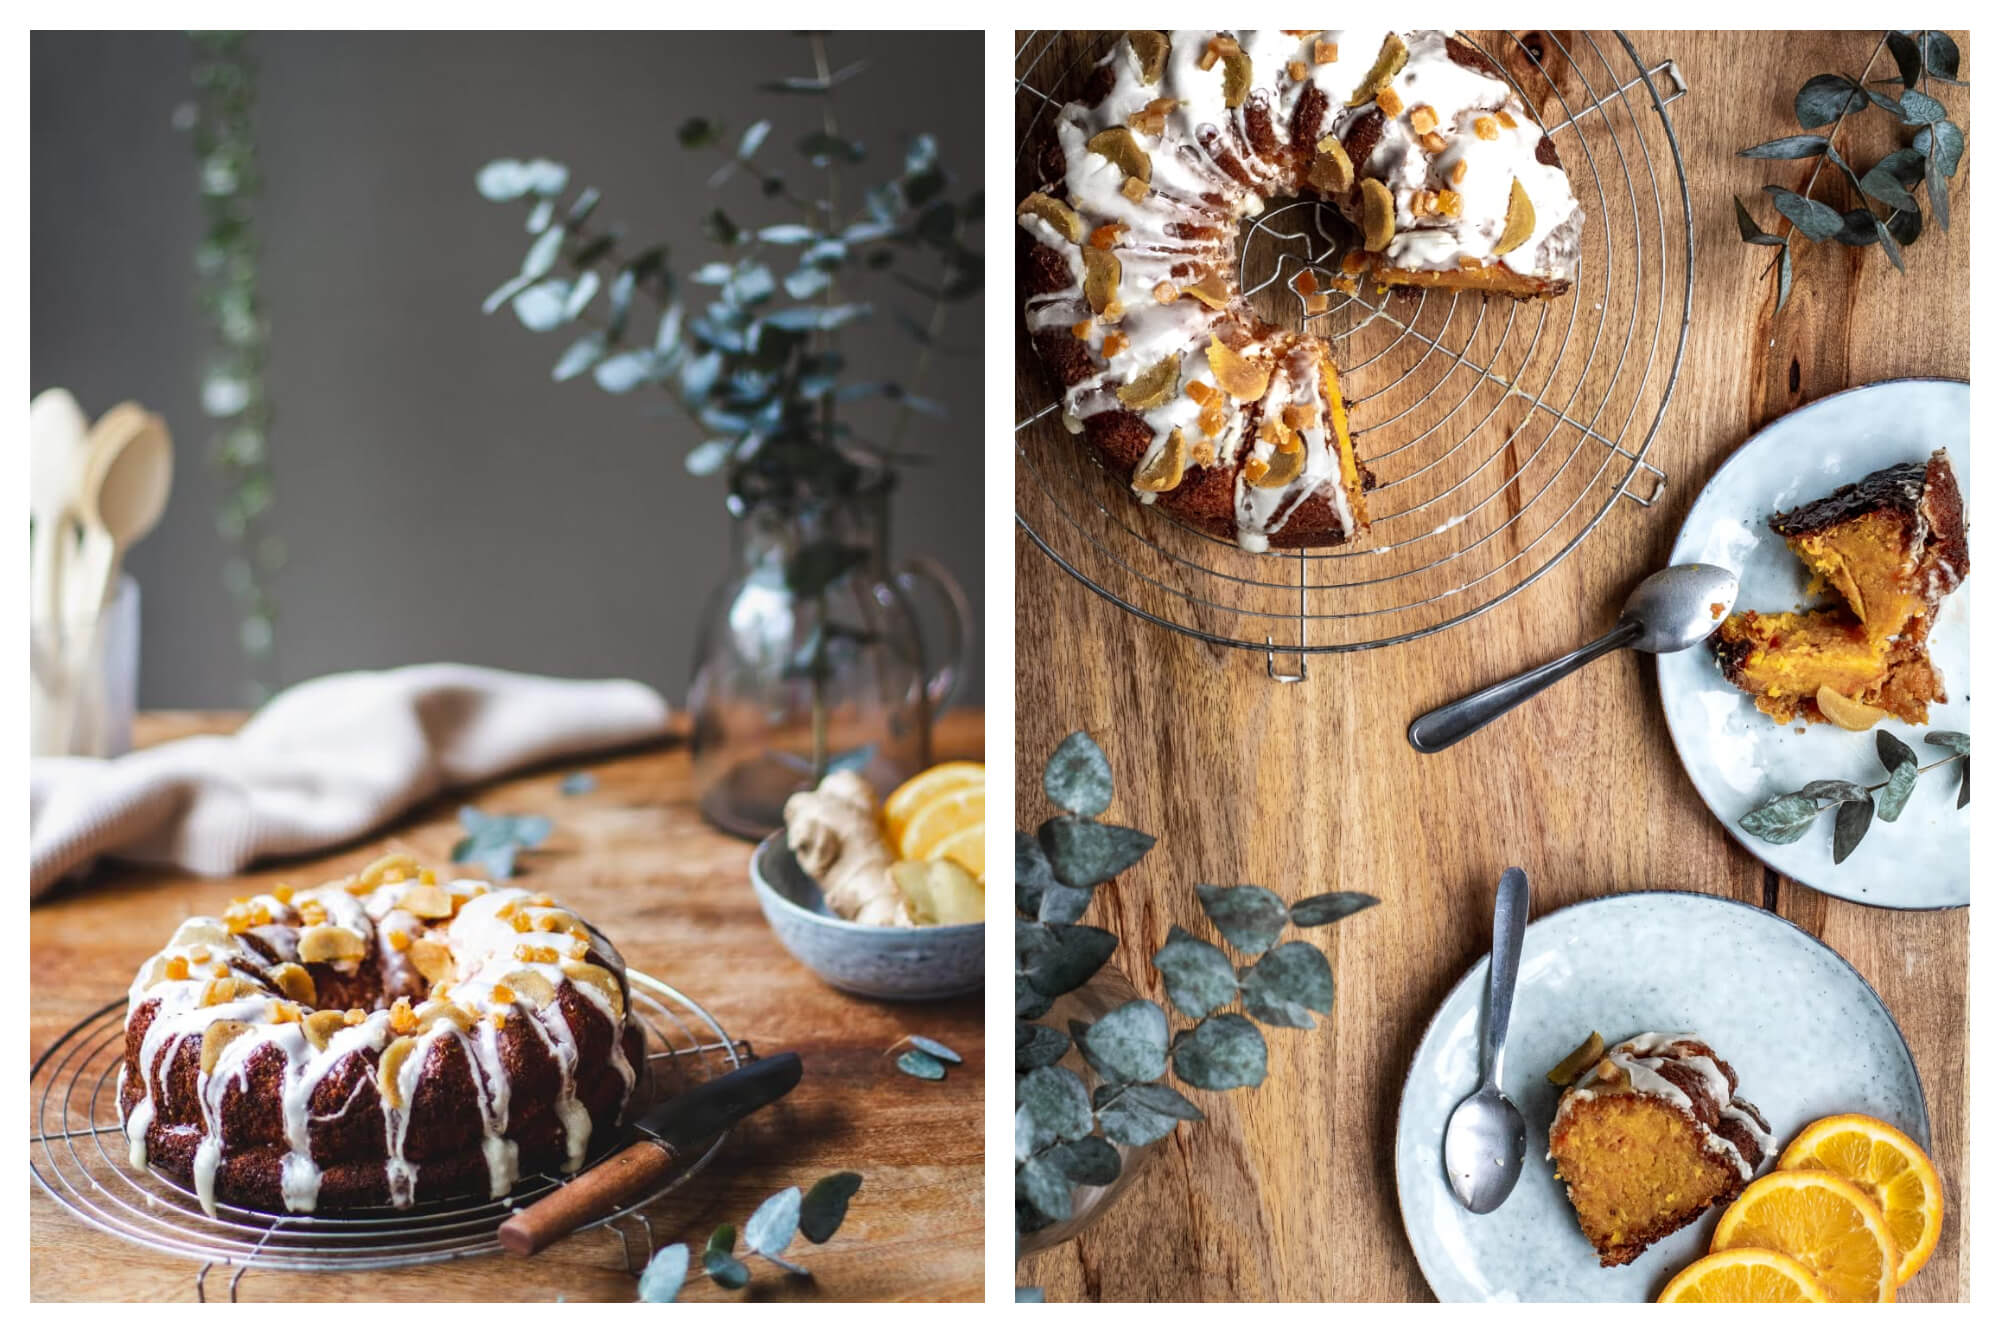 On left: An iced bundt cake, accompanied by fresh orange slices and ginger on the side, waits to be served at Villa Gypsy, a design shop and café in Trouville-sur-Mer. On right: Slices of bundt cake, garnished with orange slices and a creamy icing, reveal the rich crumb at Villa Gypsy, a café with a tranquil terrace in Trouville-sur-Mer.